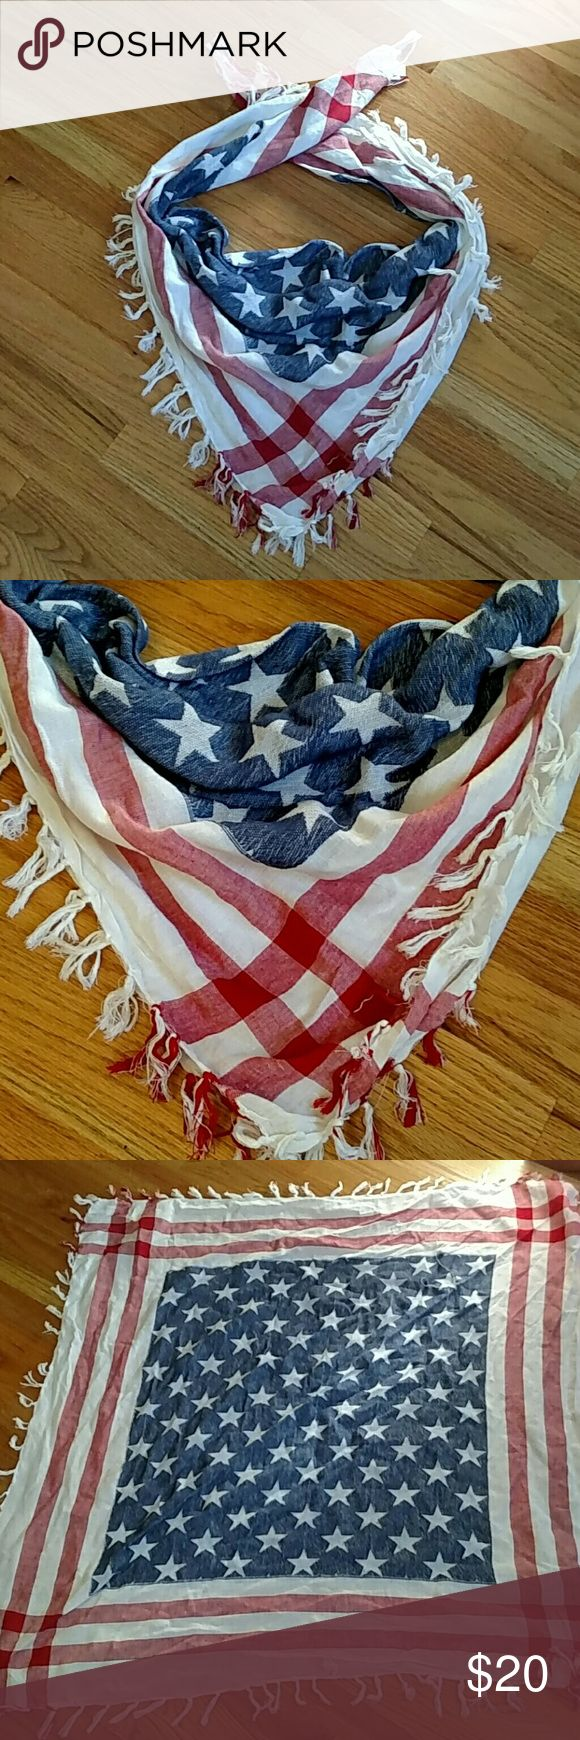 American flag fourth of july scarf Adorable scarf for and patriotic holiday. Is a squares but folds into a triangle to become a scarf, and can be worn other ways. Ask any questions. Accessories Scarves & Wraps